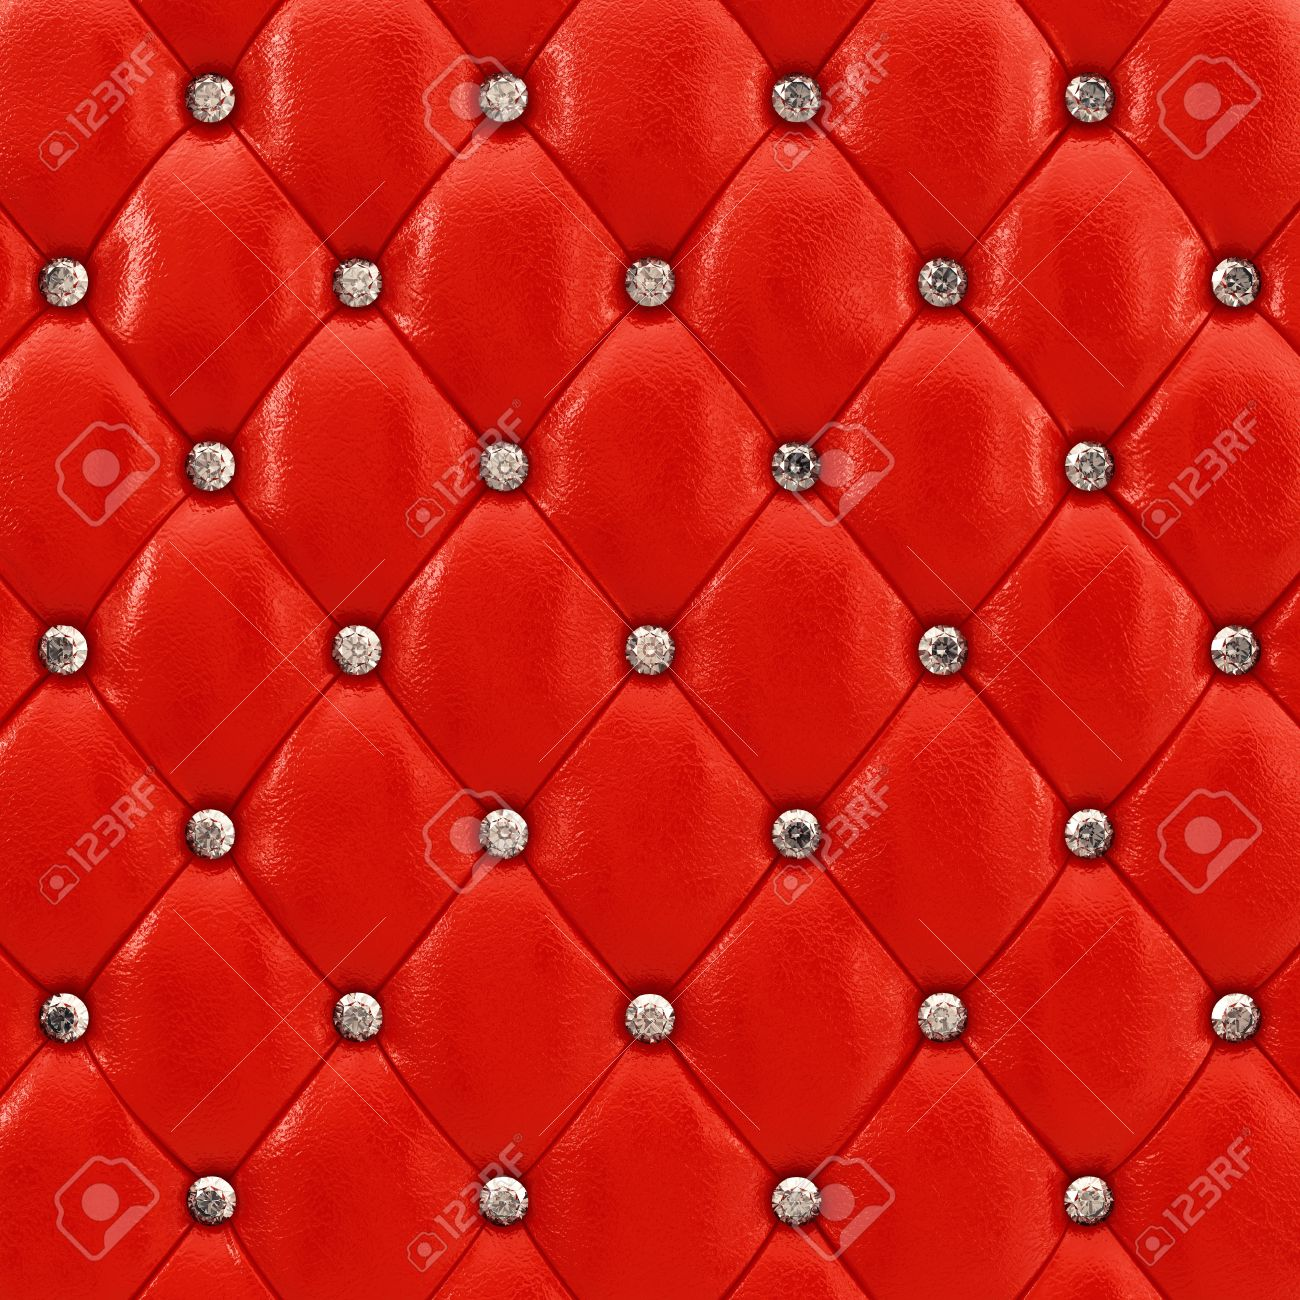 Leather cushion texture - Black Leather Upholstery Pattern 3d Illustration Stock Illustration 10746266